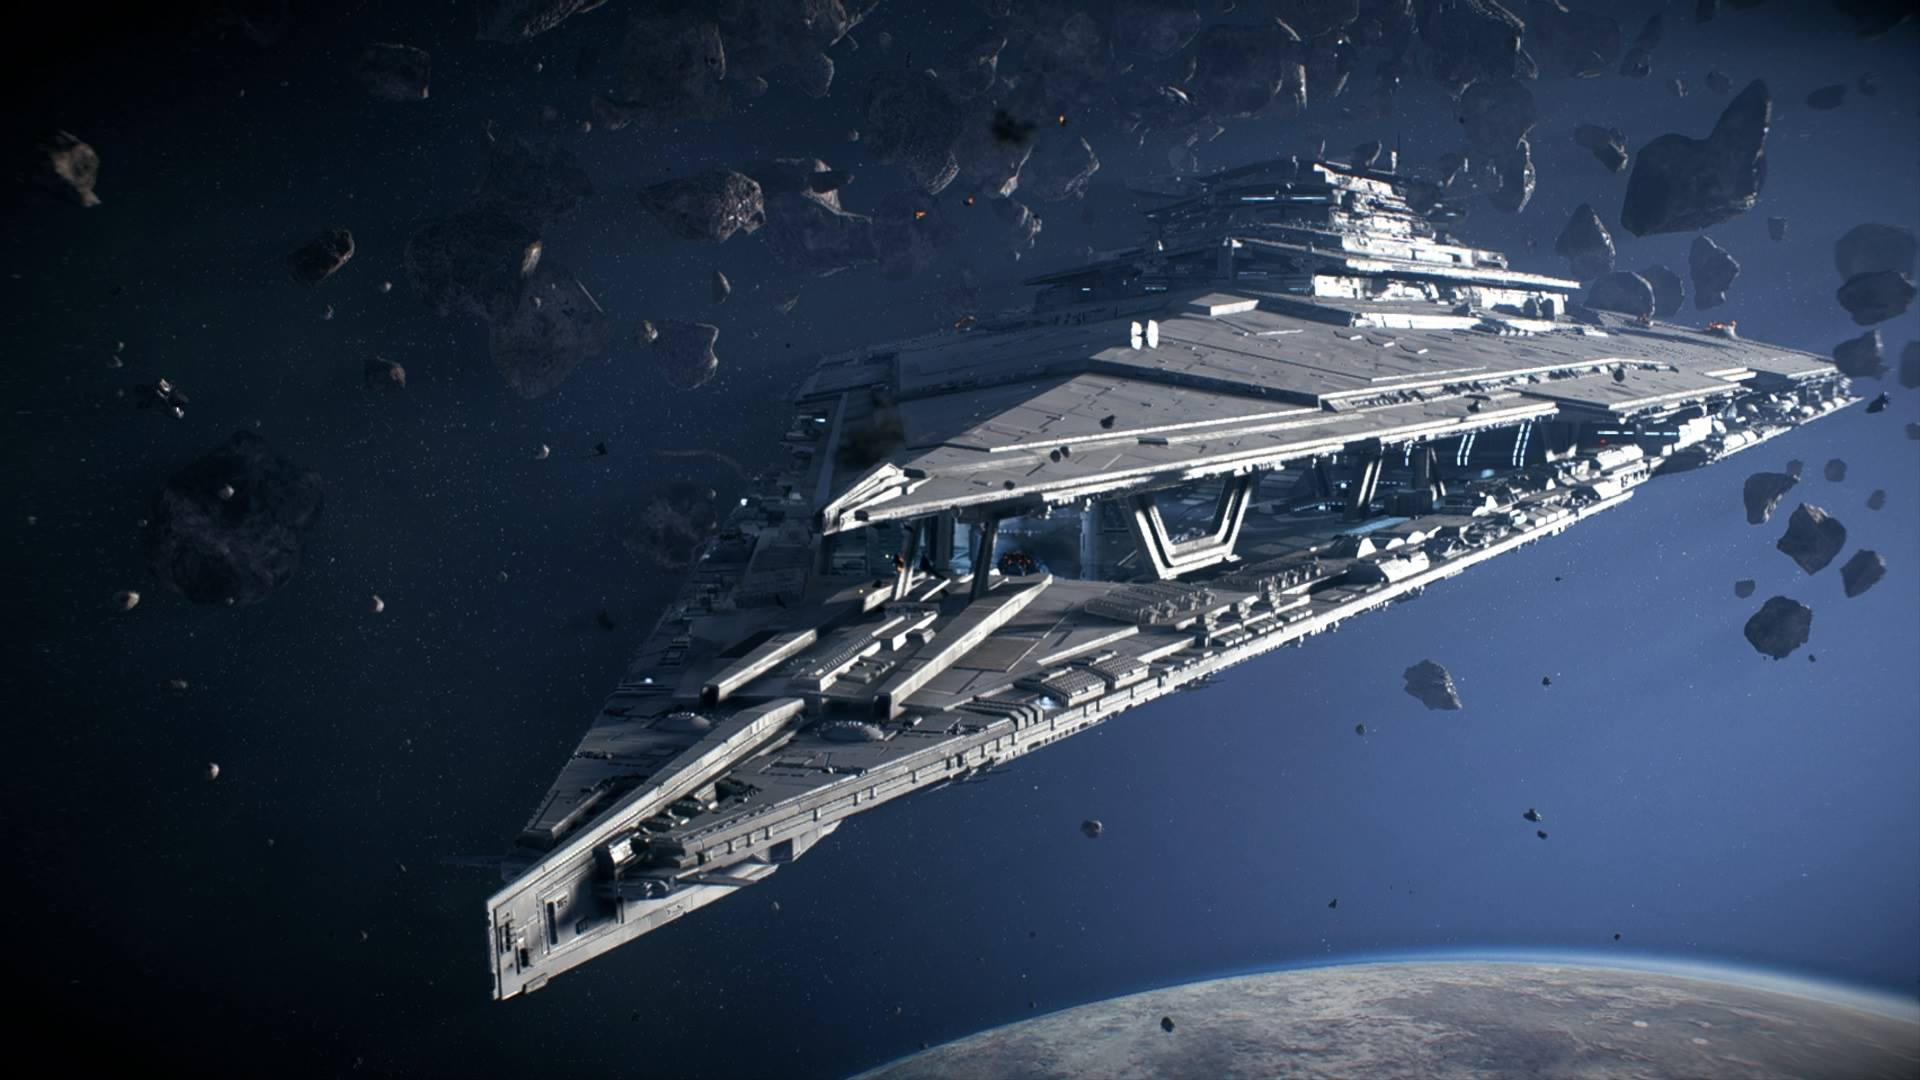 In Star Wars How Many Versions Of Star Destroyers Exist Quora